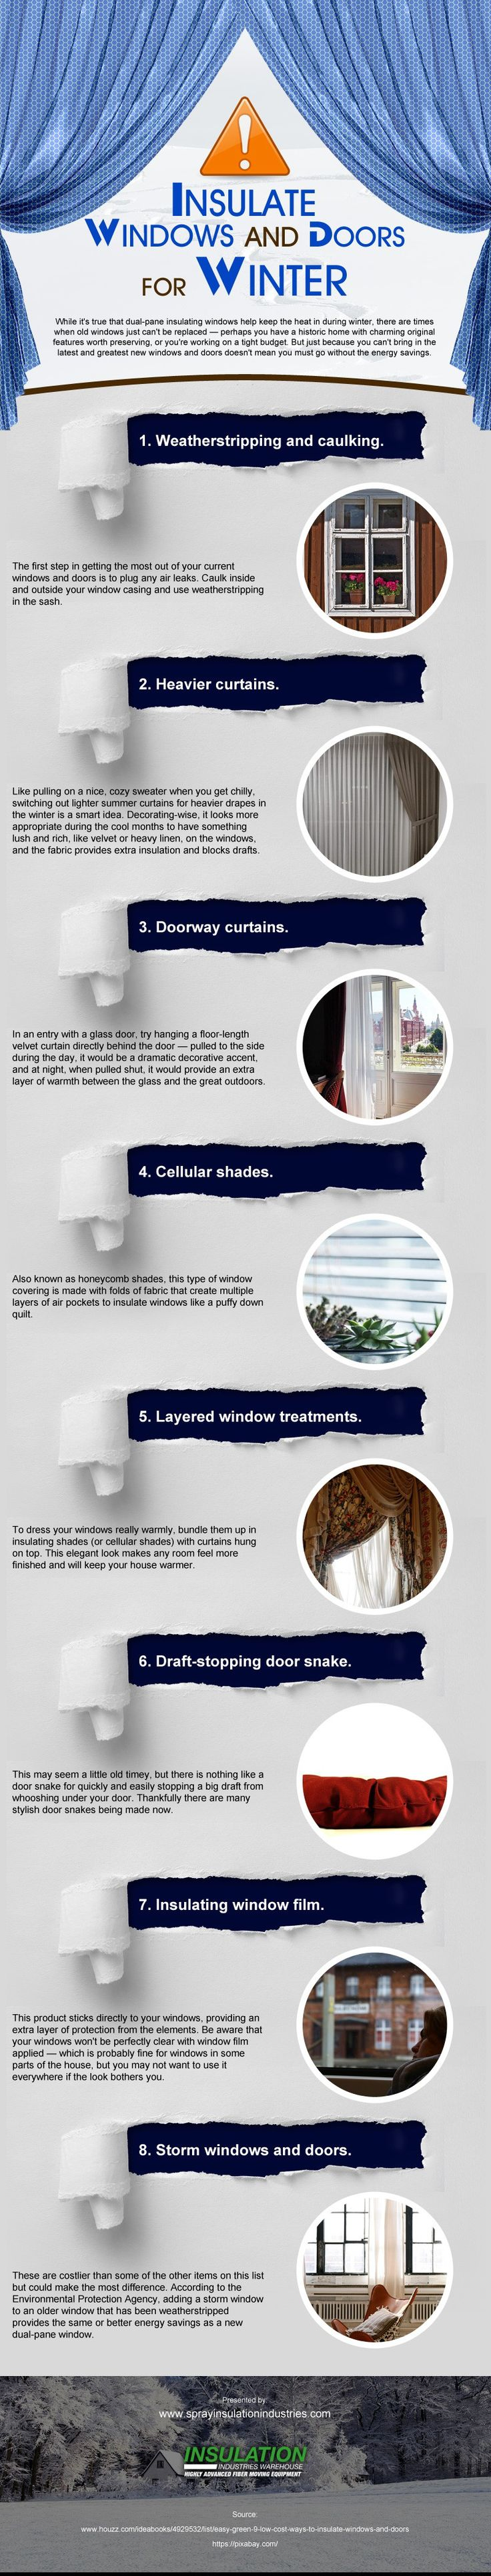 French door wood sill overlaysupplemental instructionmarvin french - Seo Friends Insulation Industries Infographic On Insulate Windows And Doors For Winter